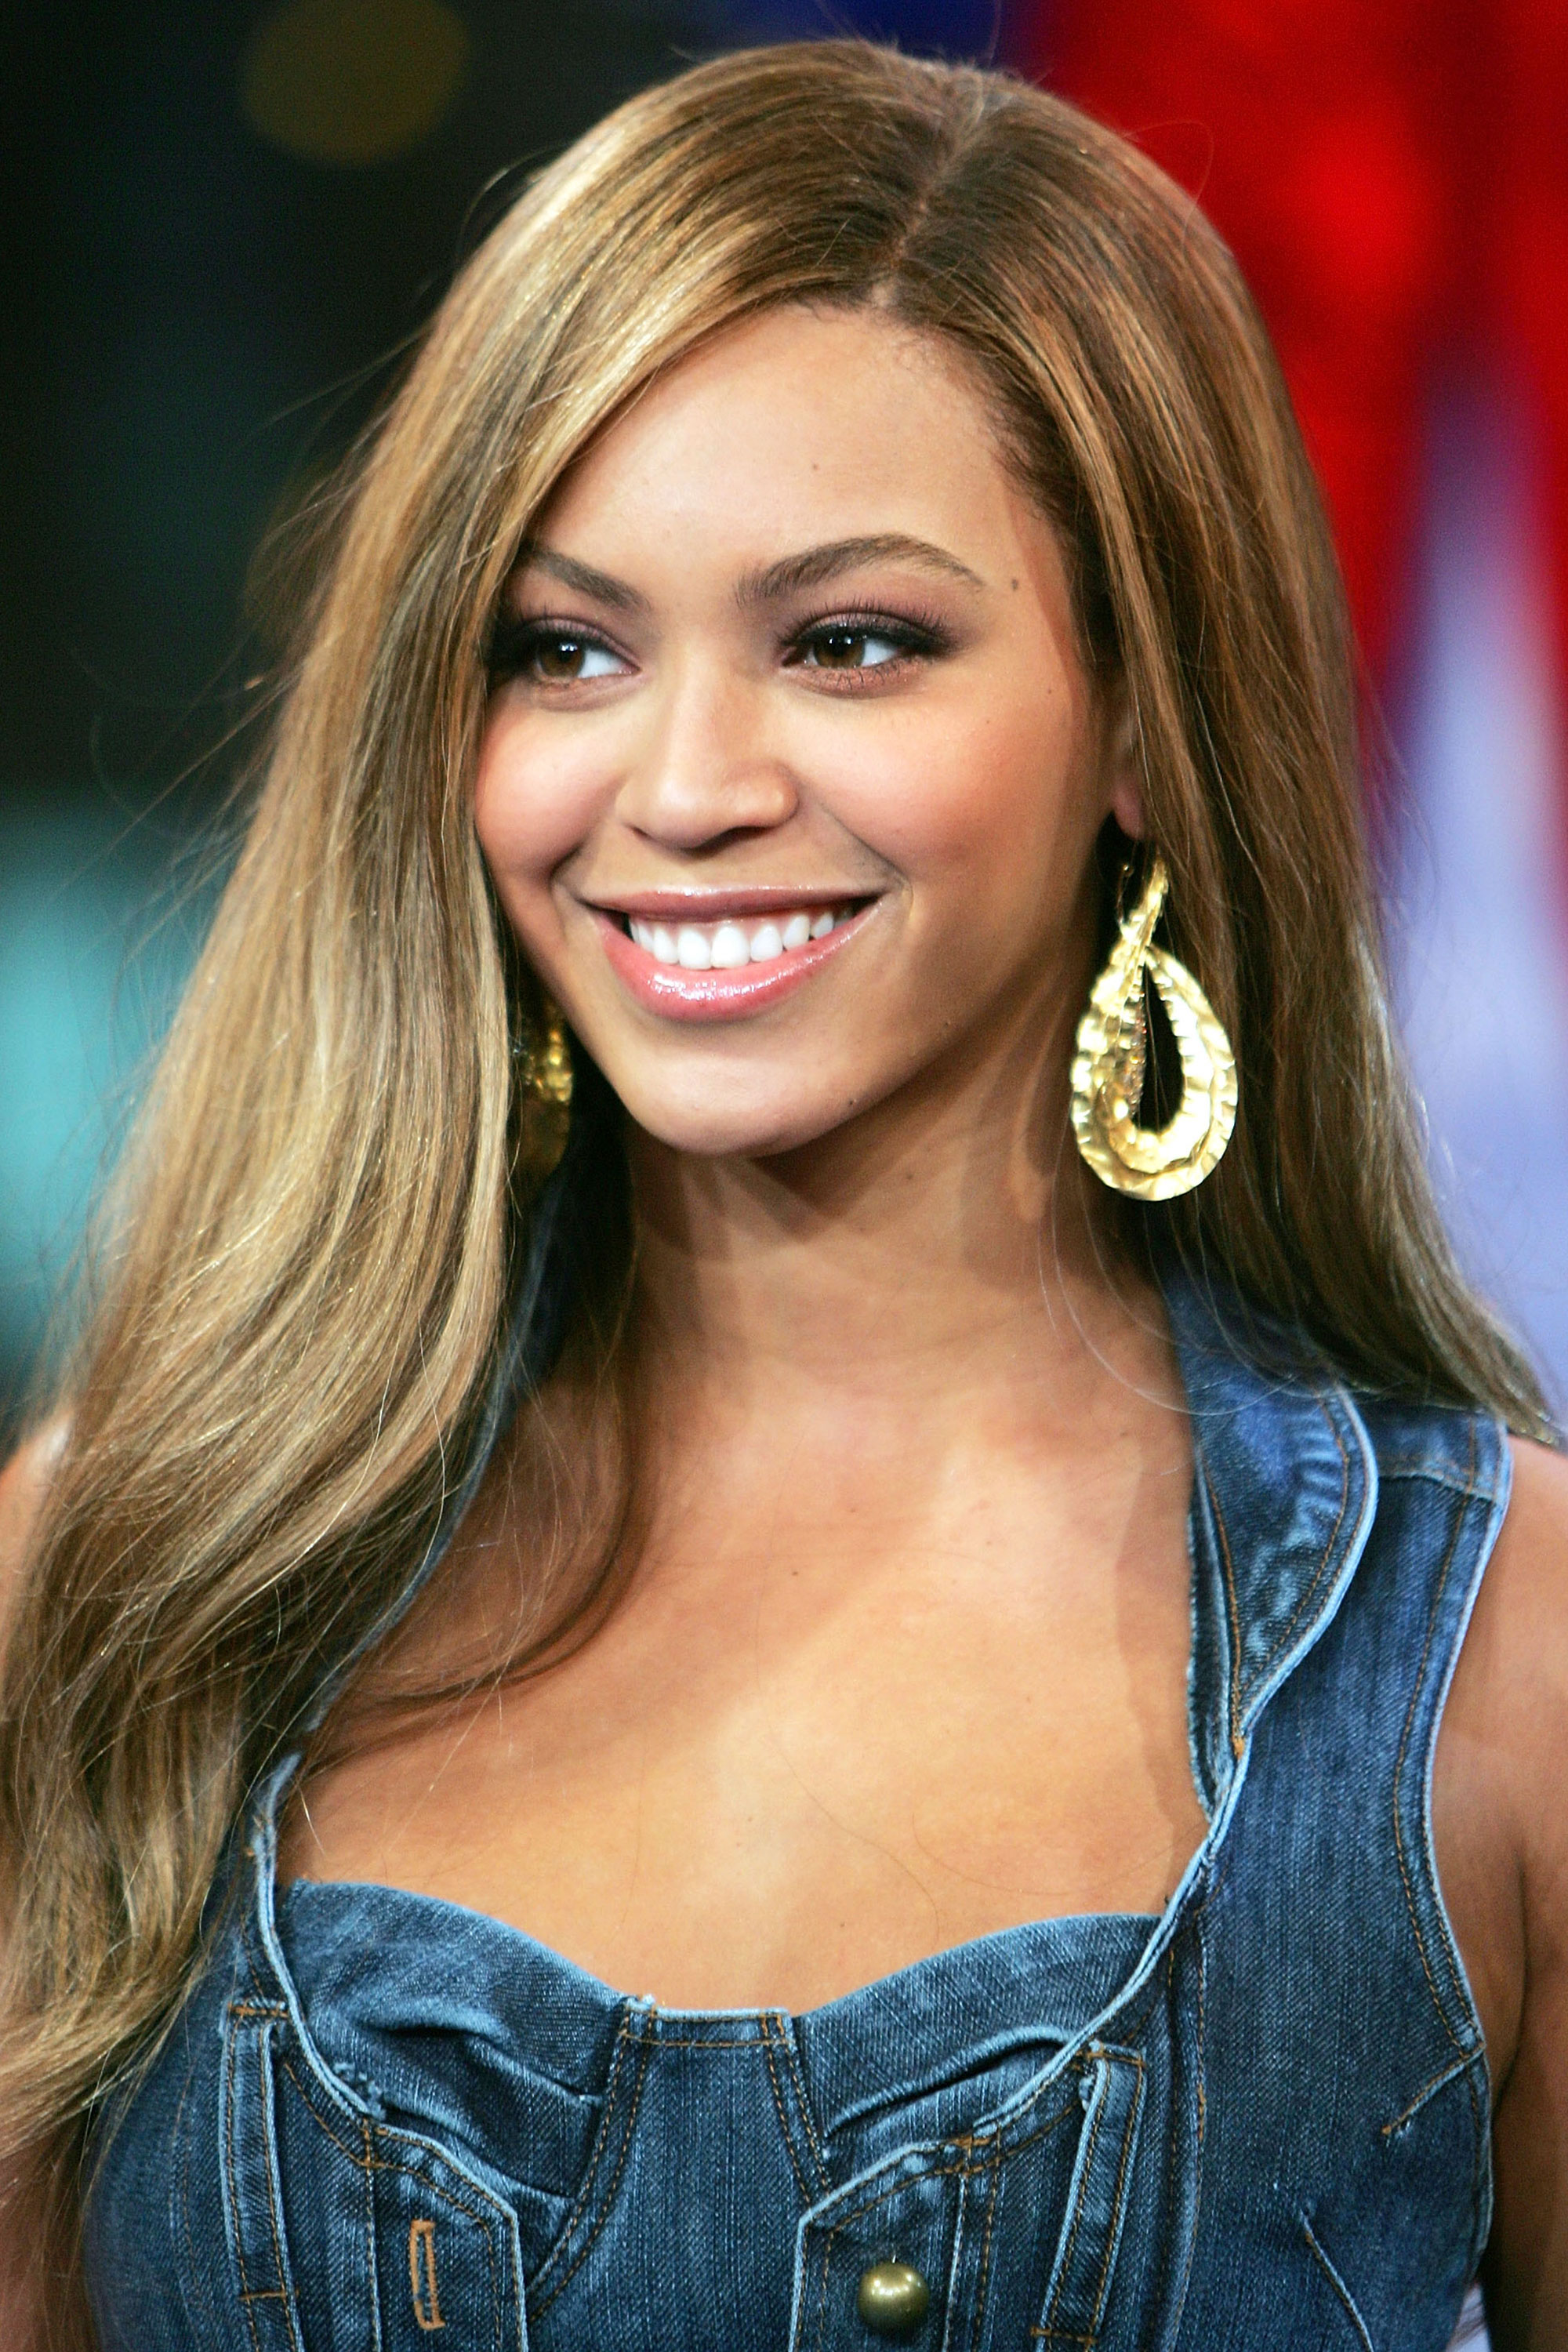 Cool 40 Beyonce Hairstyles Beyonce39S Real Hair Long Hair And Short Short Hairstyles For Black Women Fulllsitofus